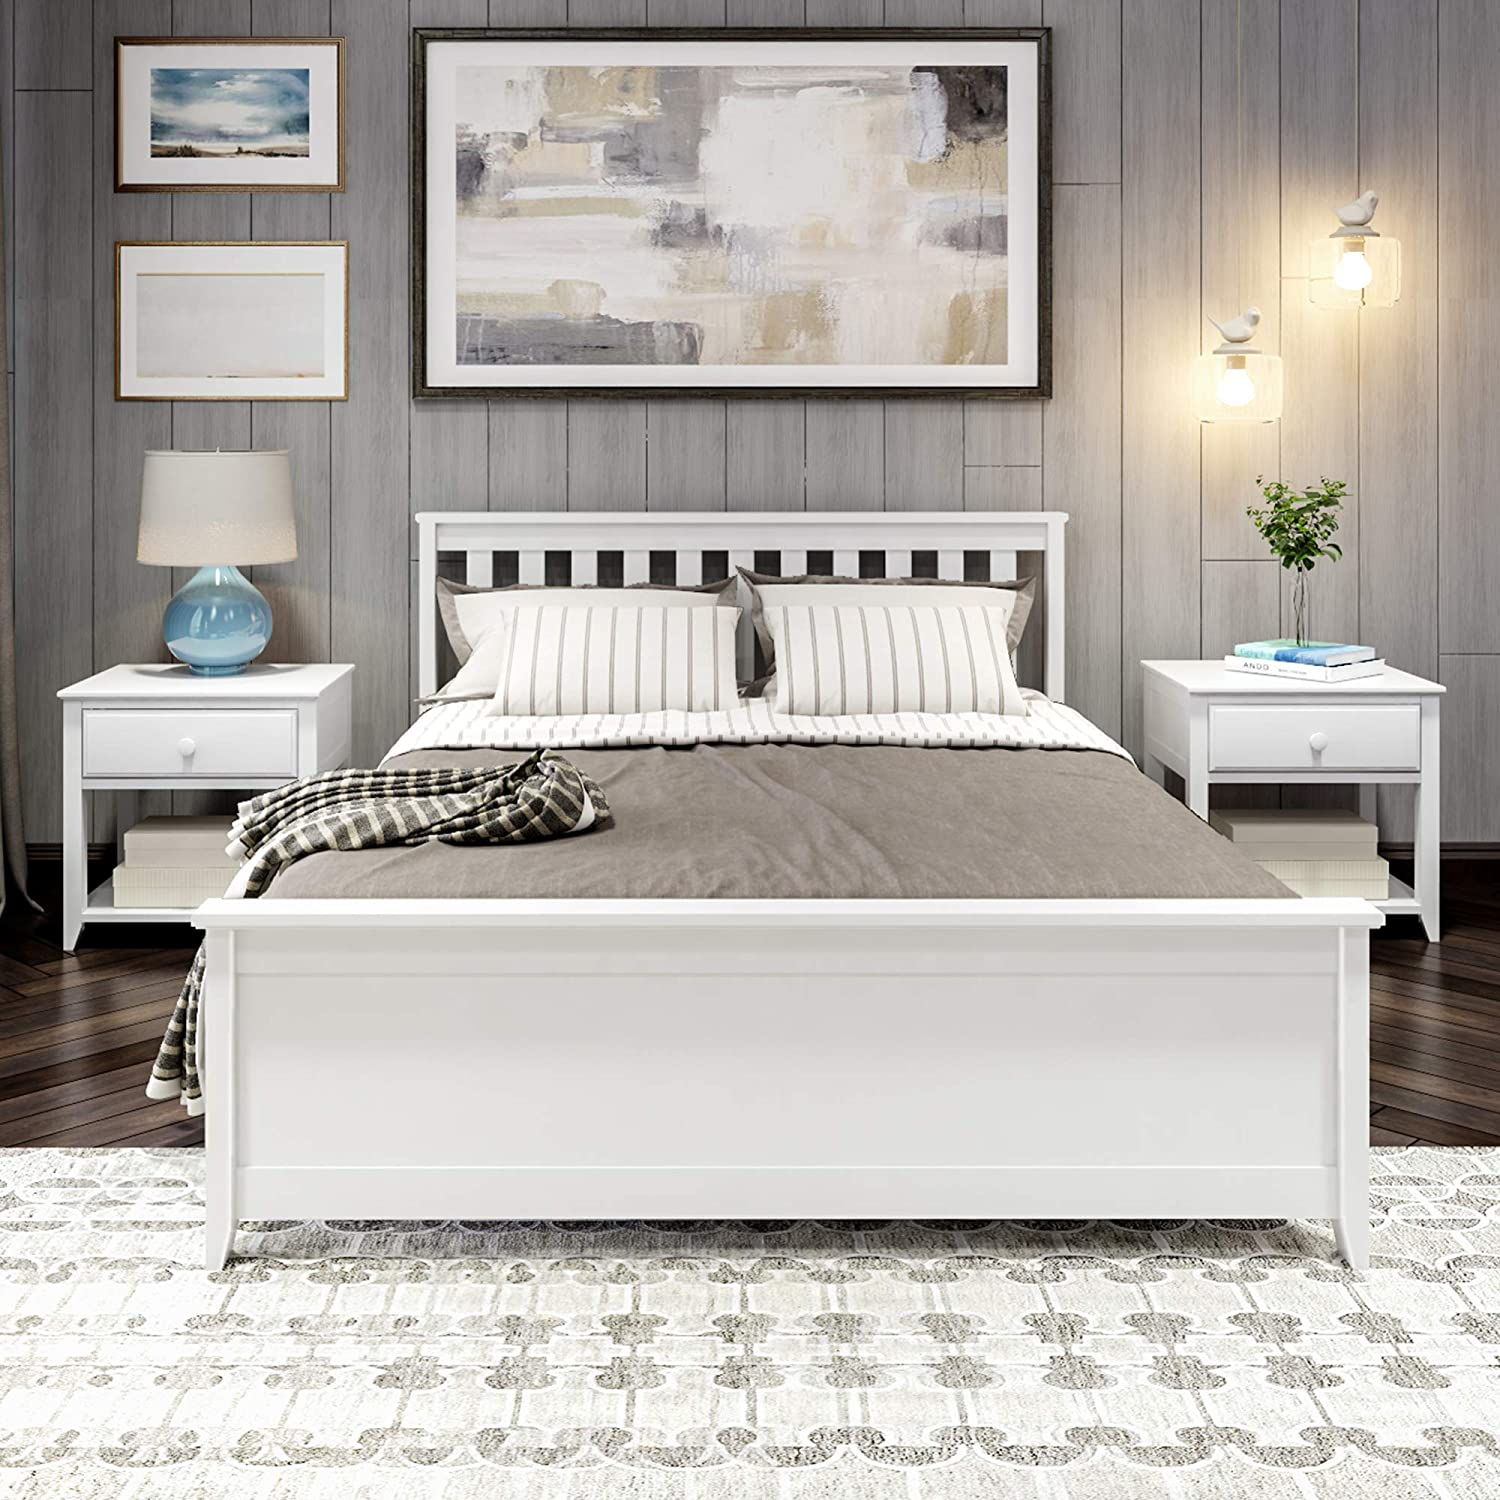 Plank & Beam PB312-002 Solid Wood Queen-Size Bed, White